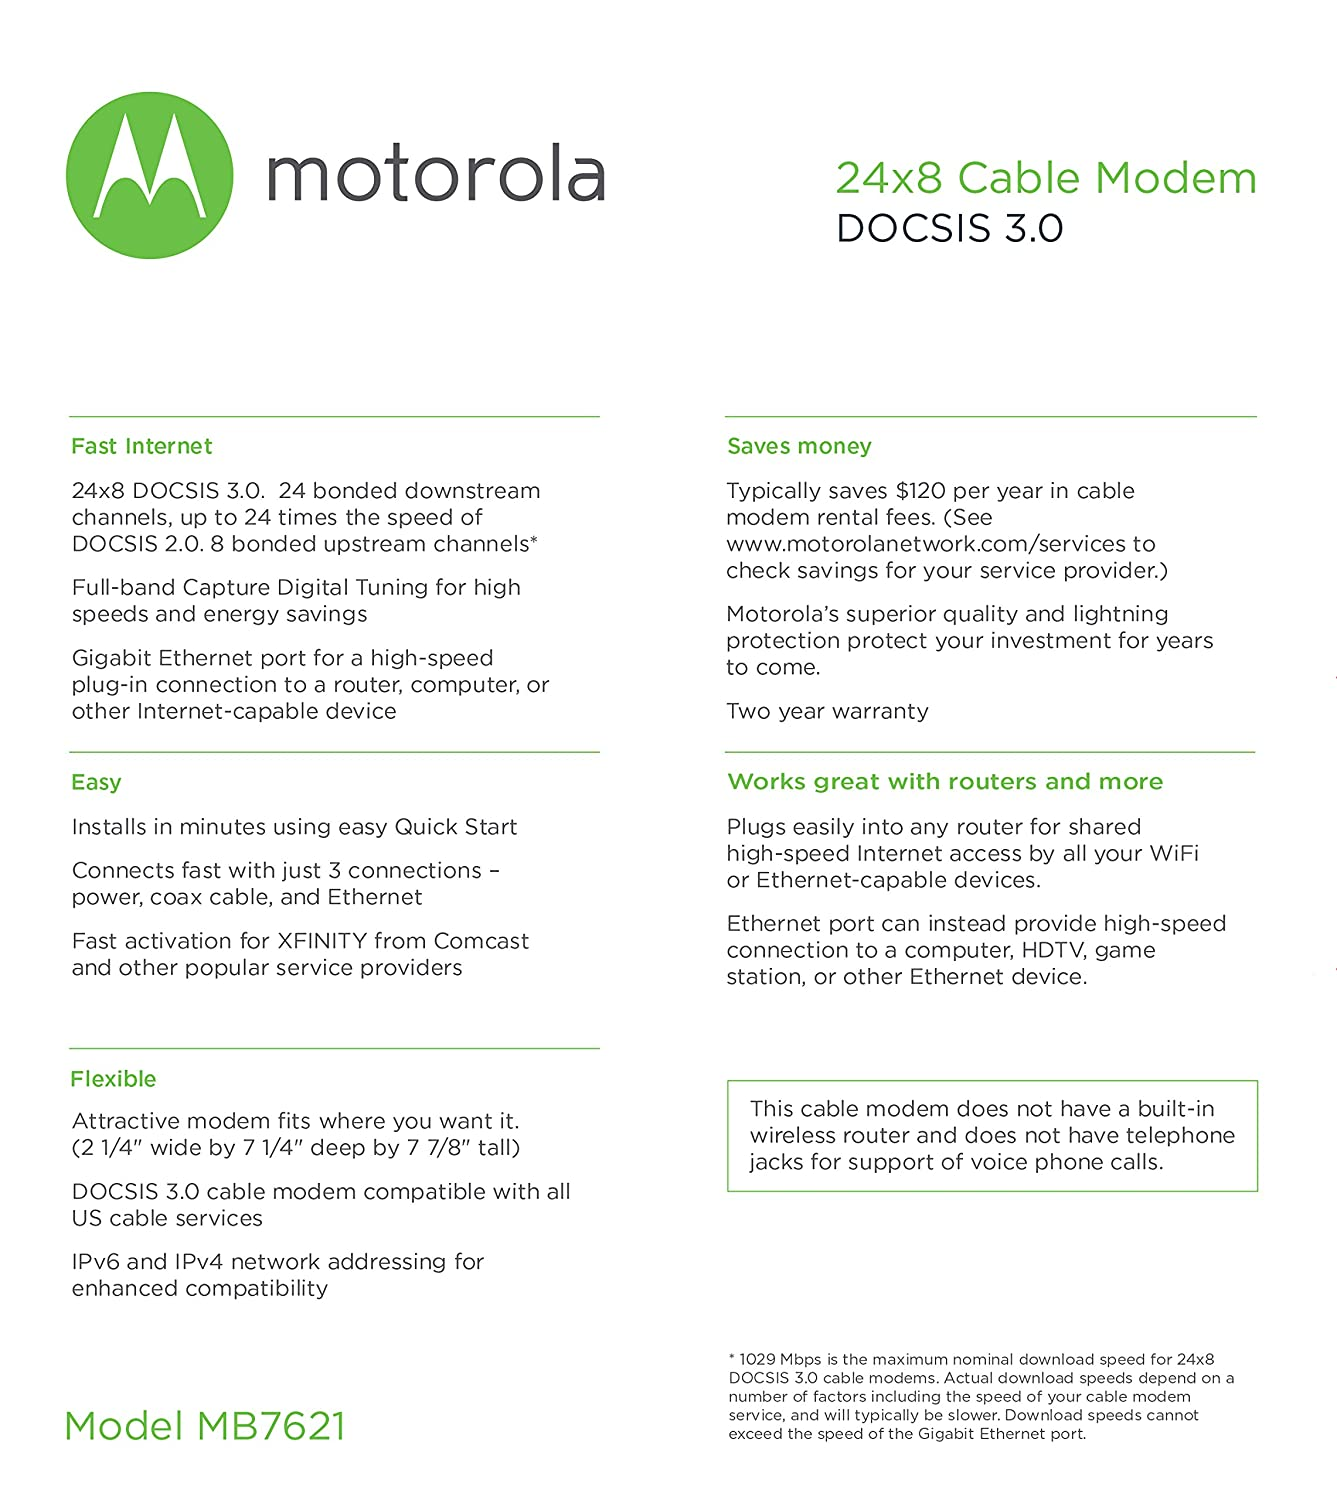 Motorola 24x8 Cable Modem Model Mb7621 Docsis 30 Xfinity Wiring Diagram Approved By Comcast Cox Charter Spectrum Time Warner And More